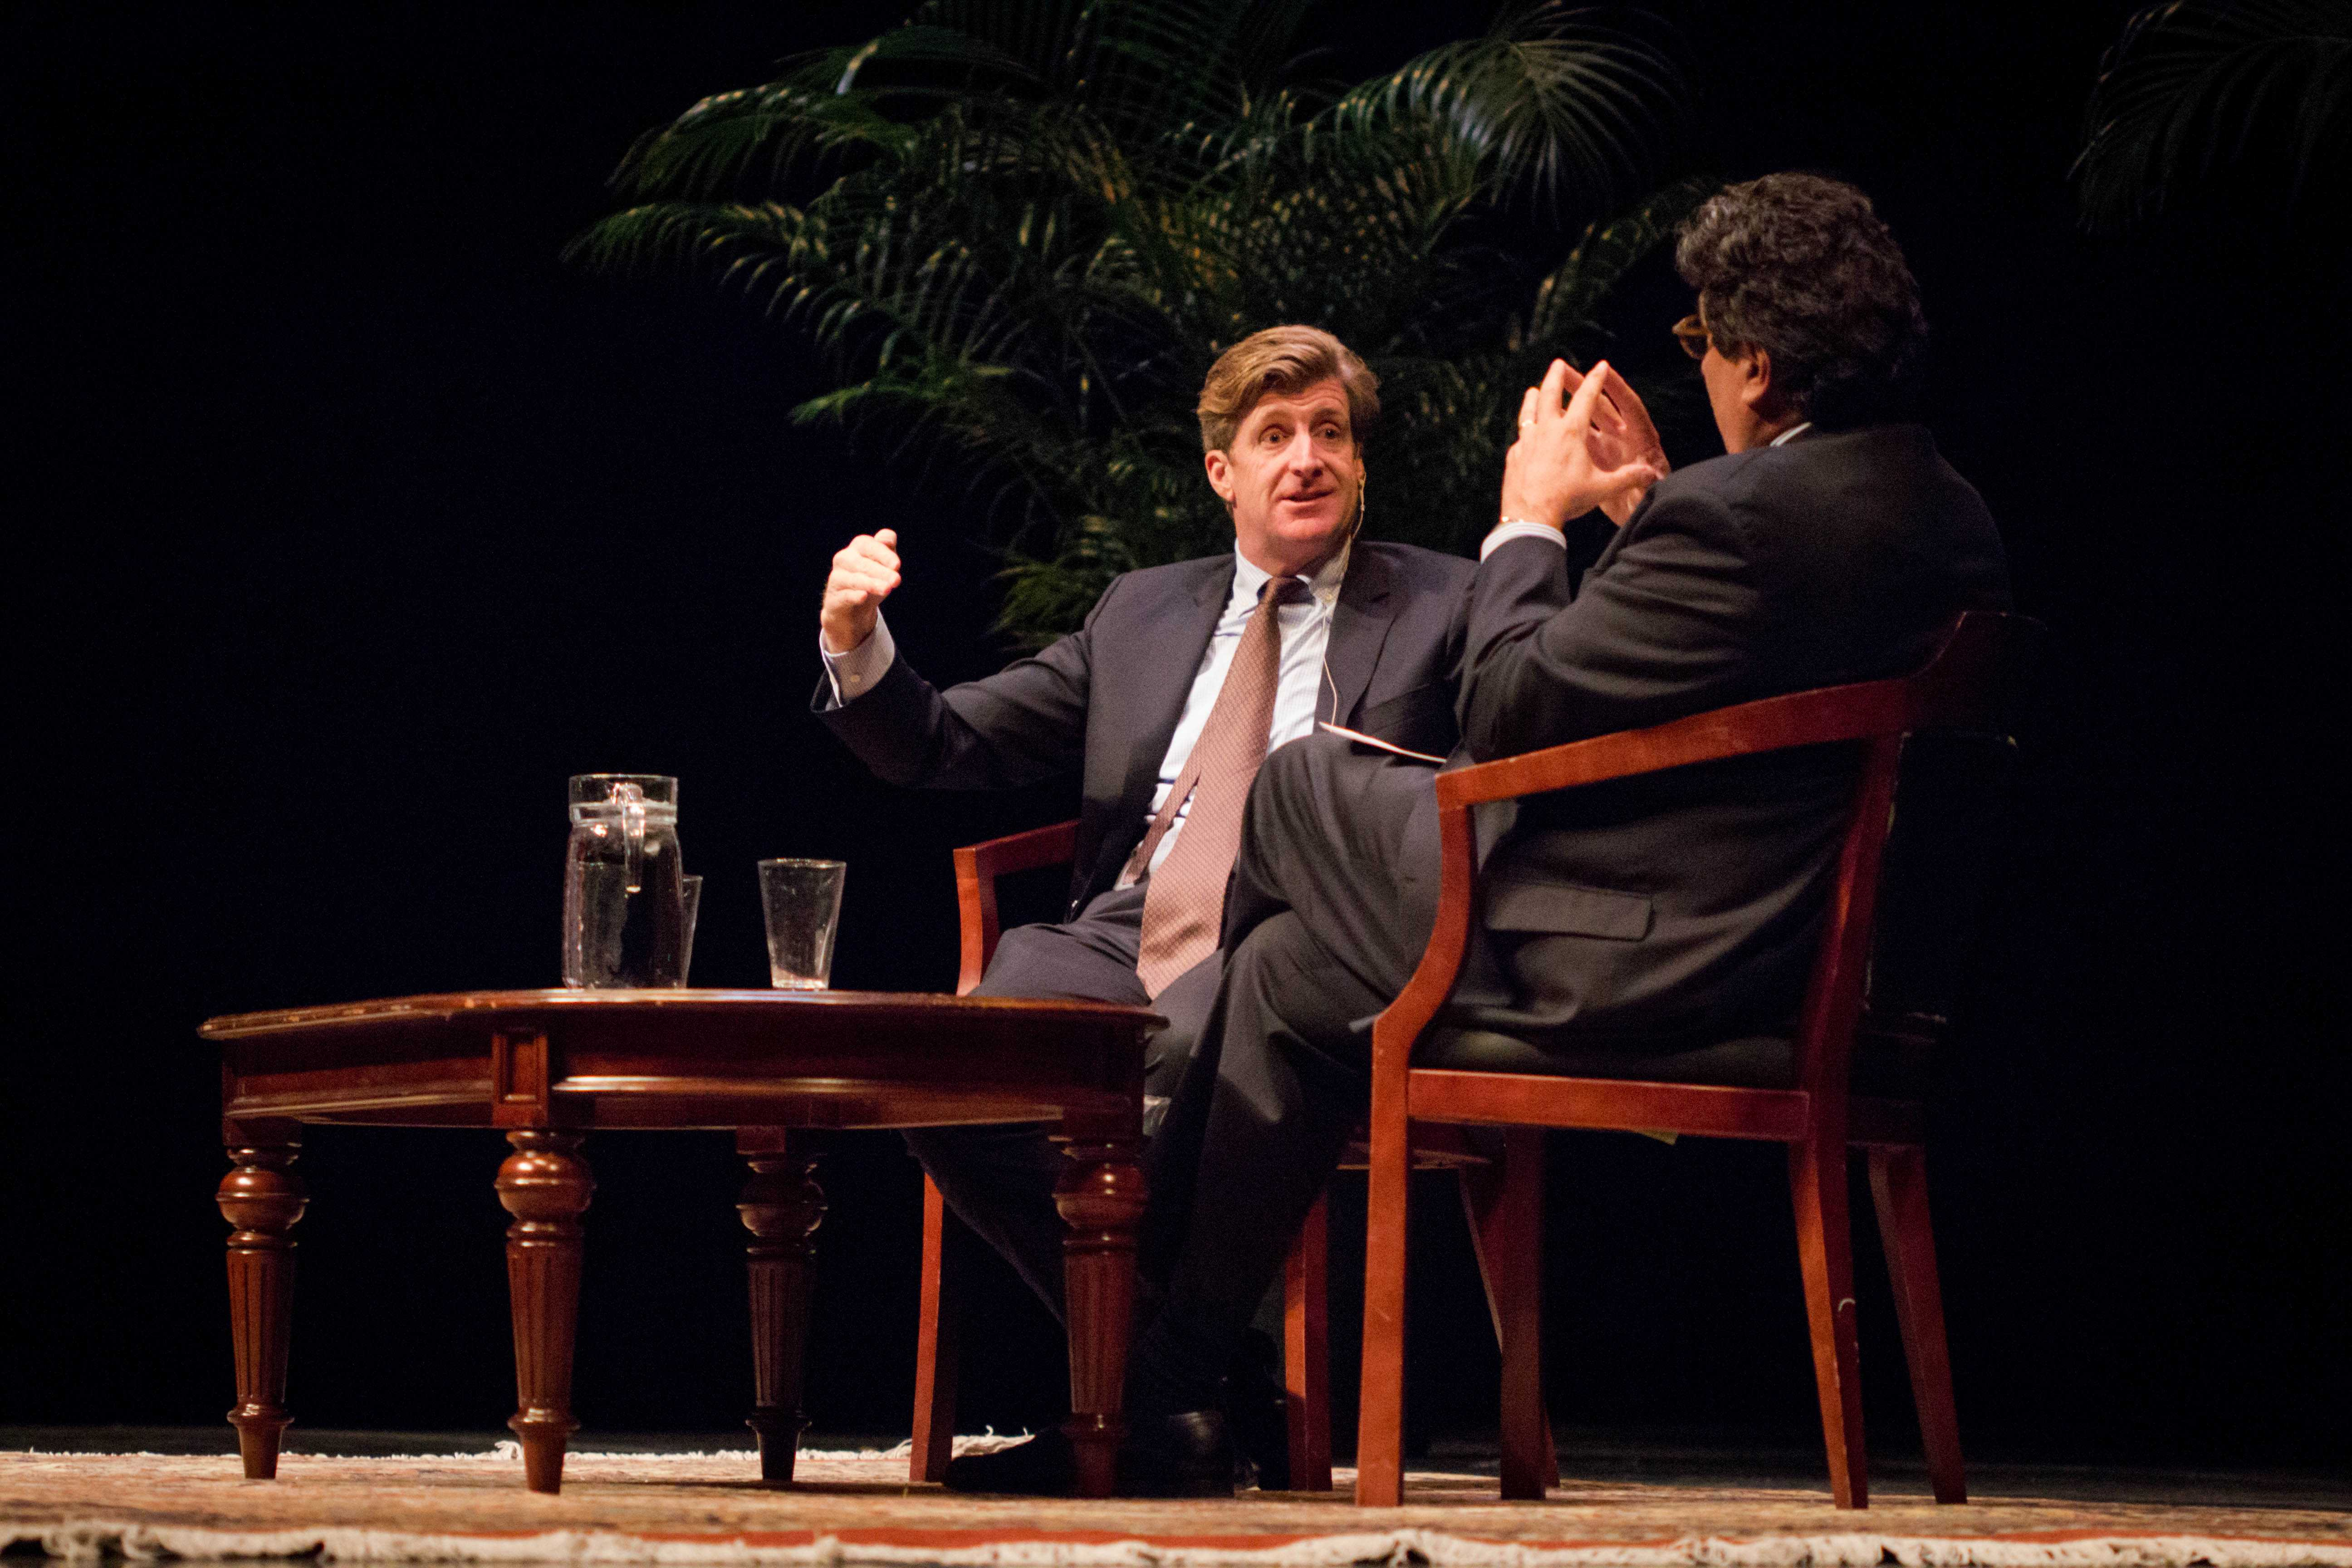 The Honorable Patrick J. Kennedy joins Chancellor Zeppos to discuss the significance of mental health at Langford Auditorium on Tuesday, March 13, 2018. (Photo by Emily Gonçalves)